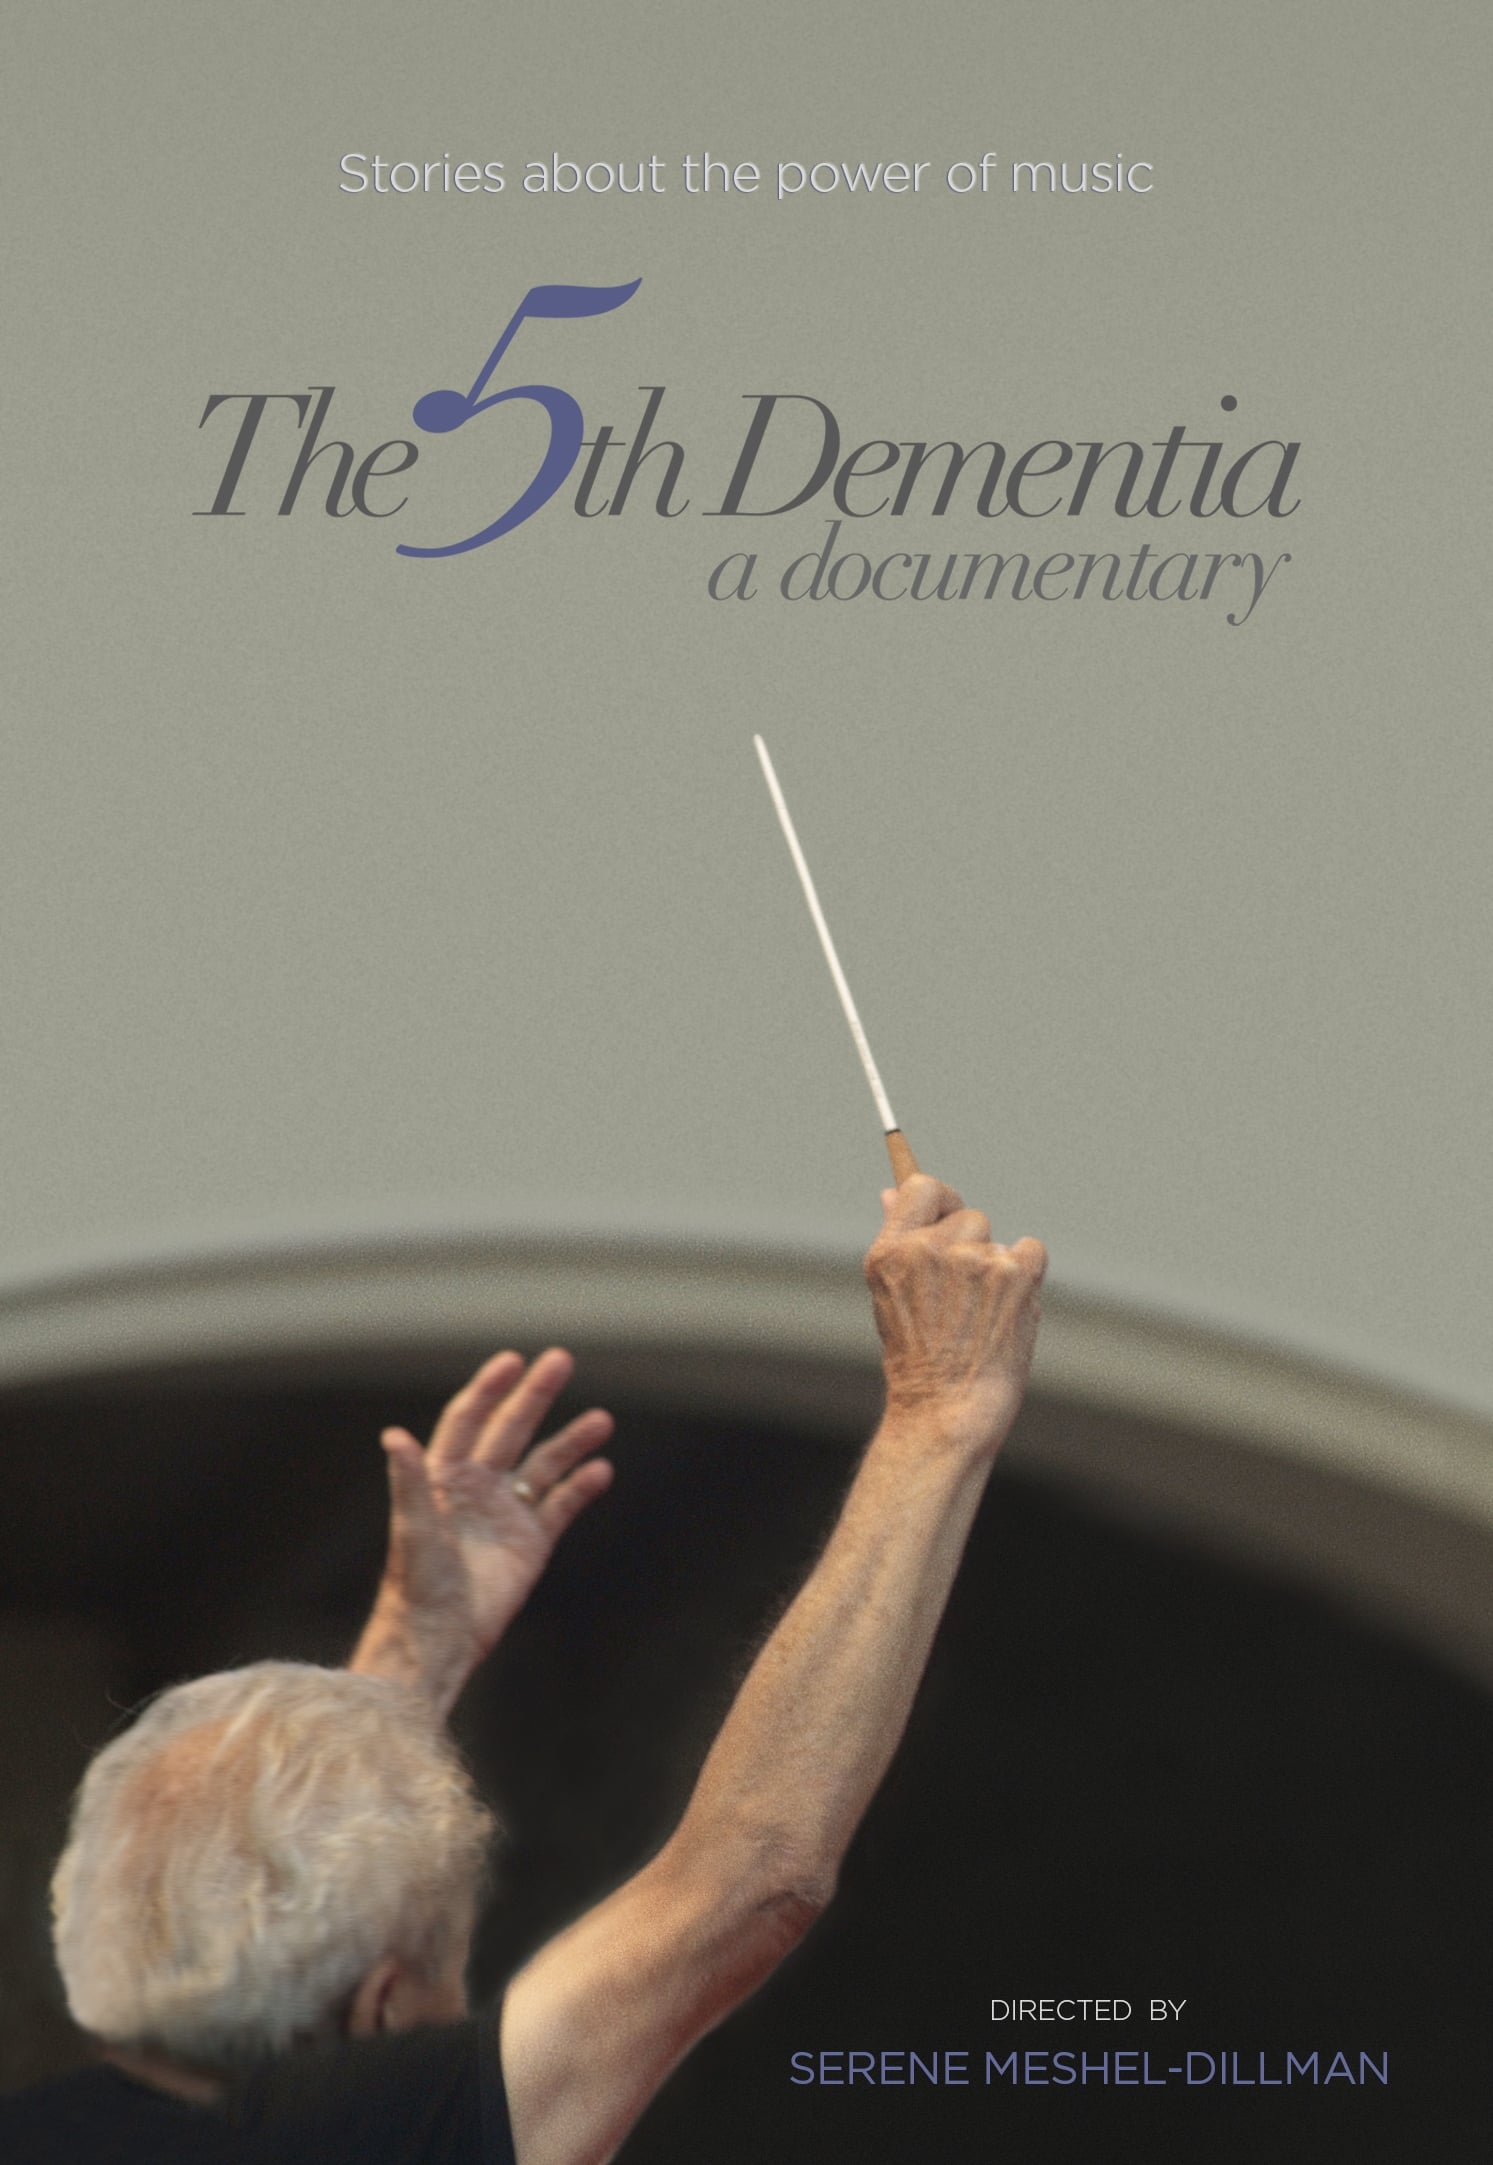 The 5th Dementia Documentary (1970)